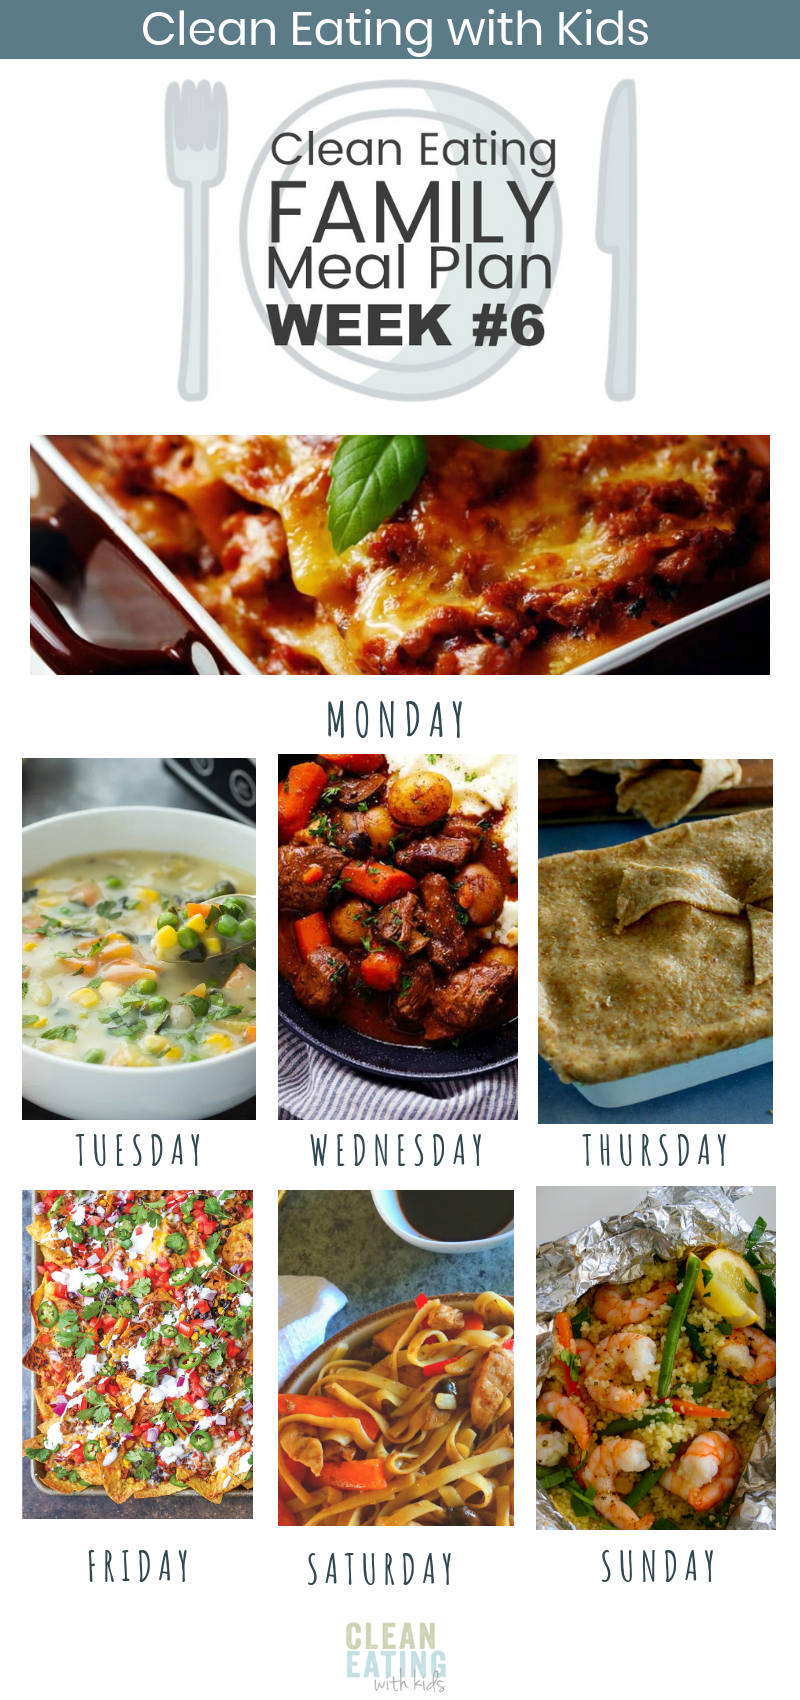 Clean Eating Weekly Family Meal Plan #6 images